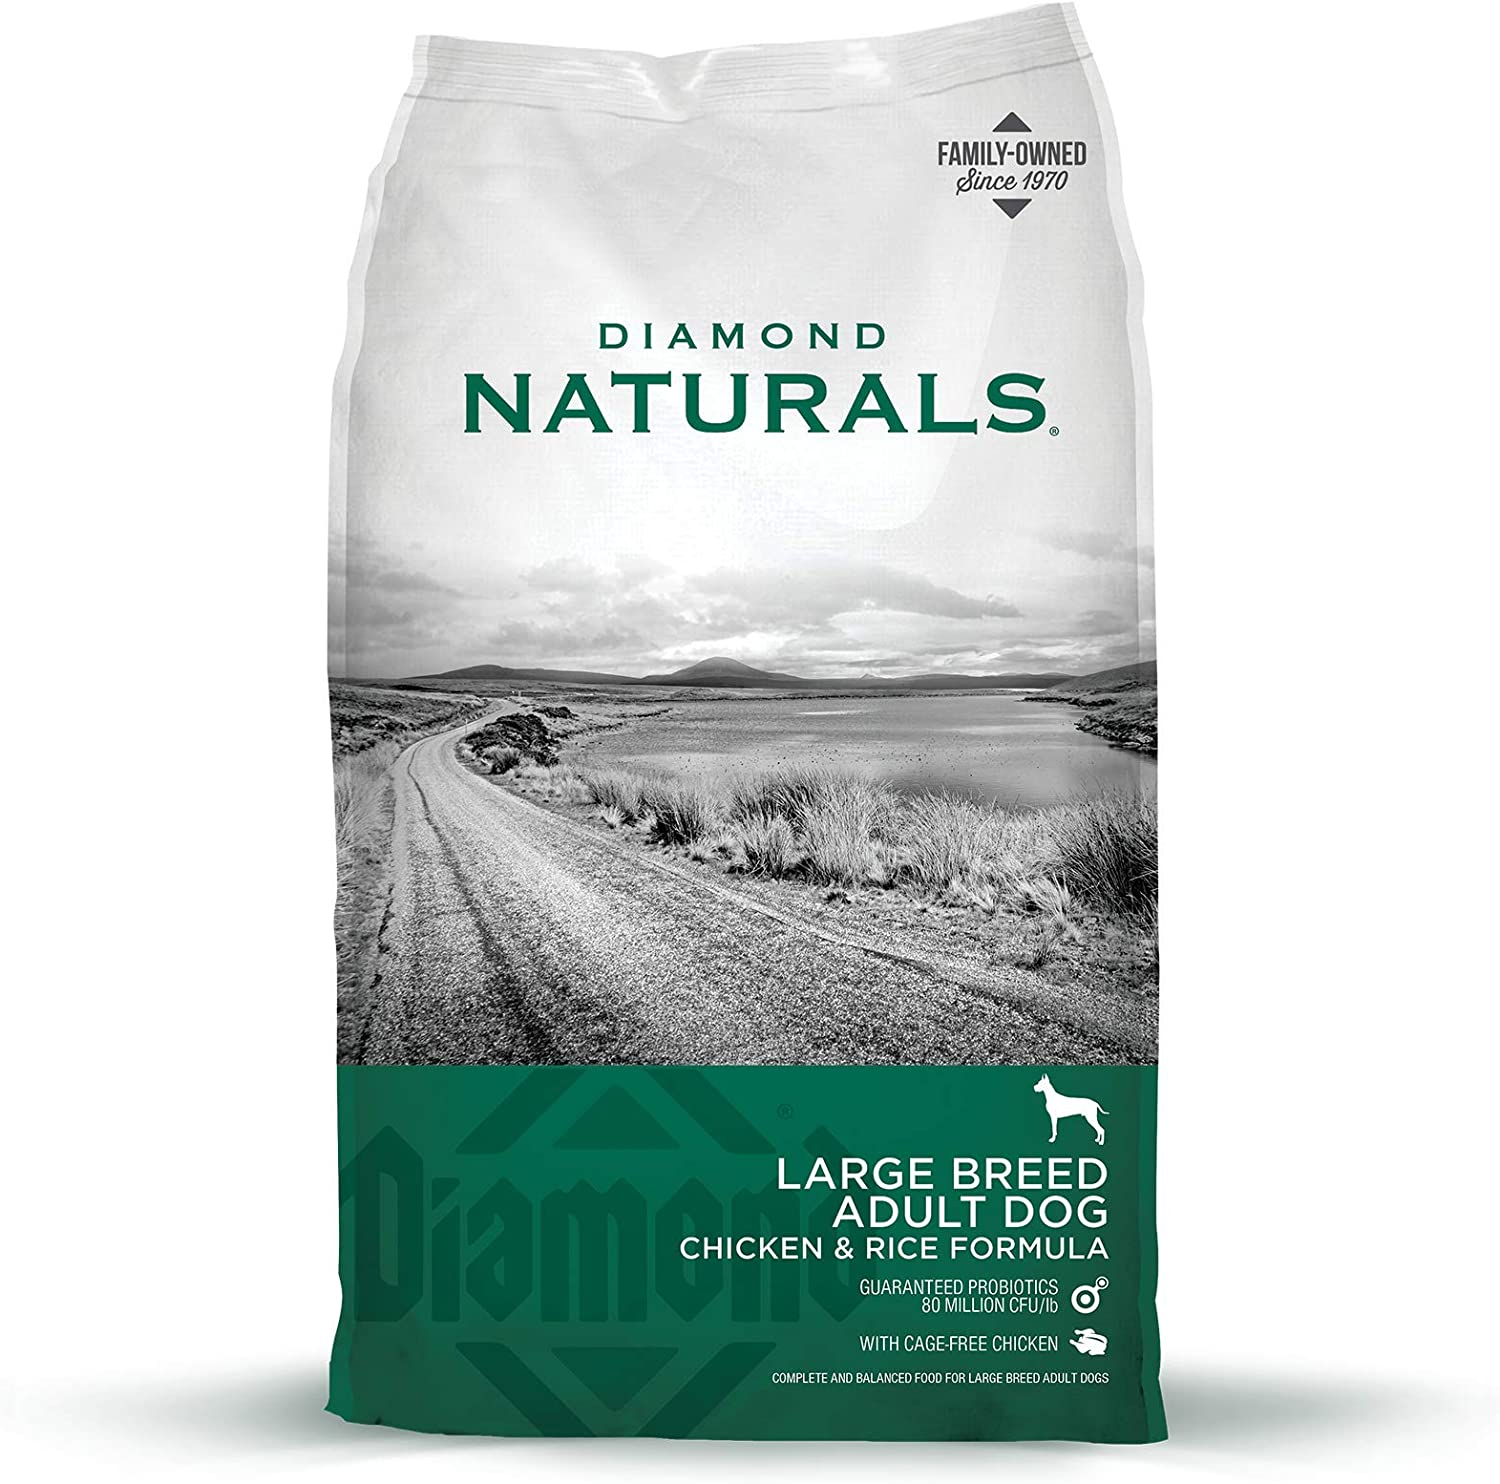 2. Diamond Naturals Large Breed Dog Food